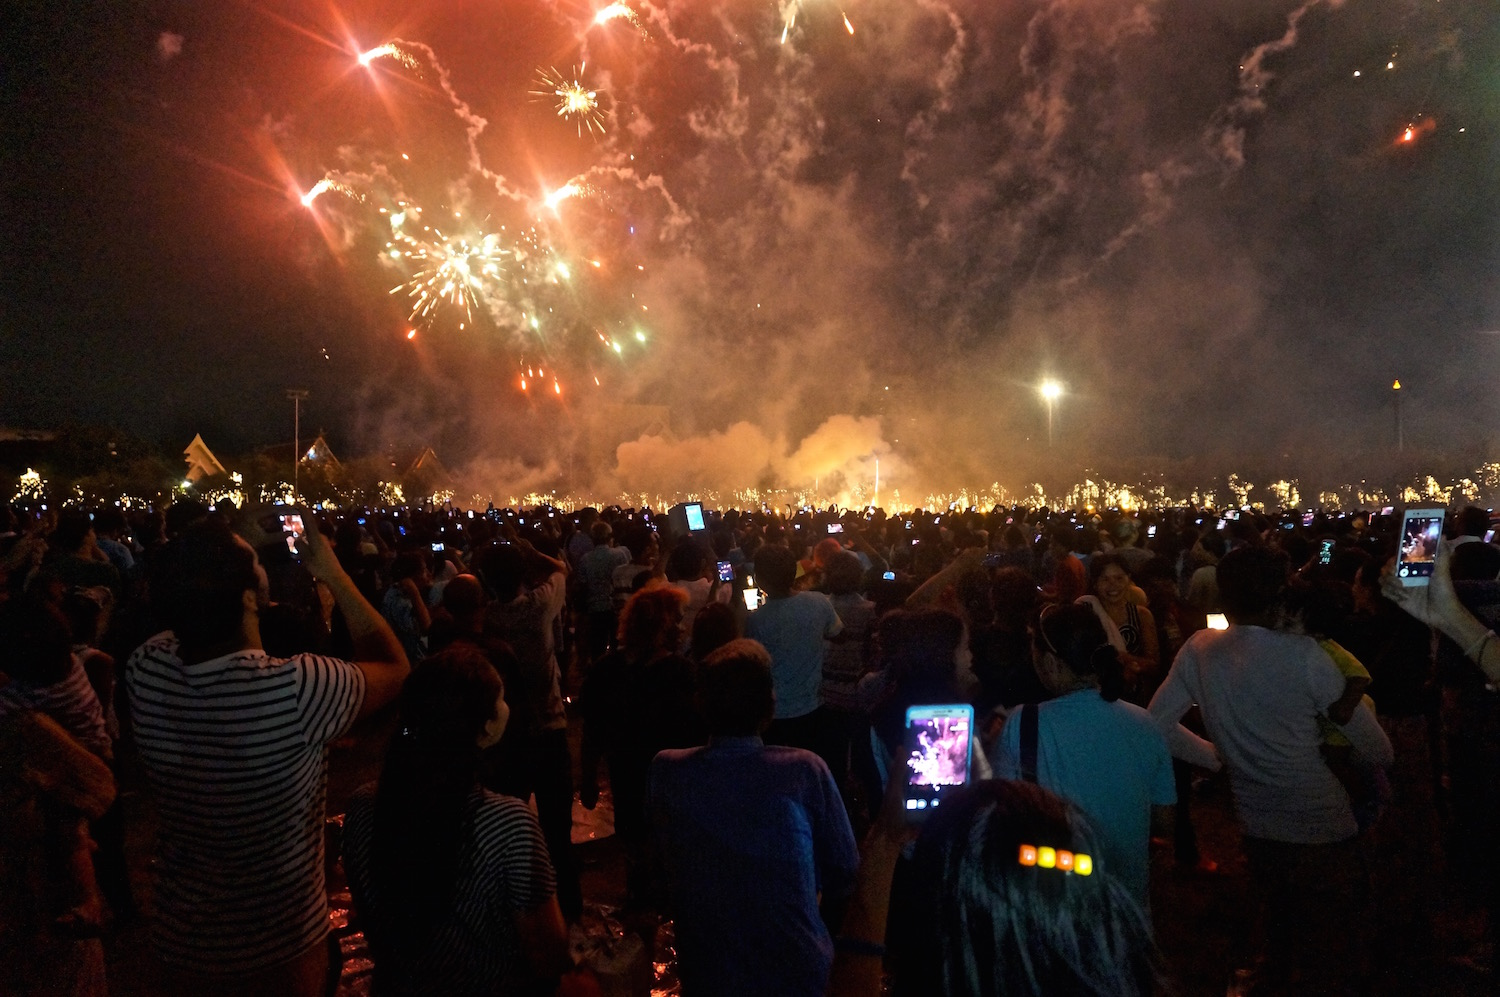 Bangkok Top 10 - Sanam Luang Fireworks for the Queen's Birthday